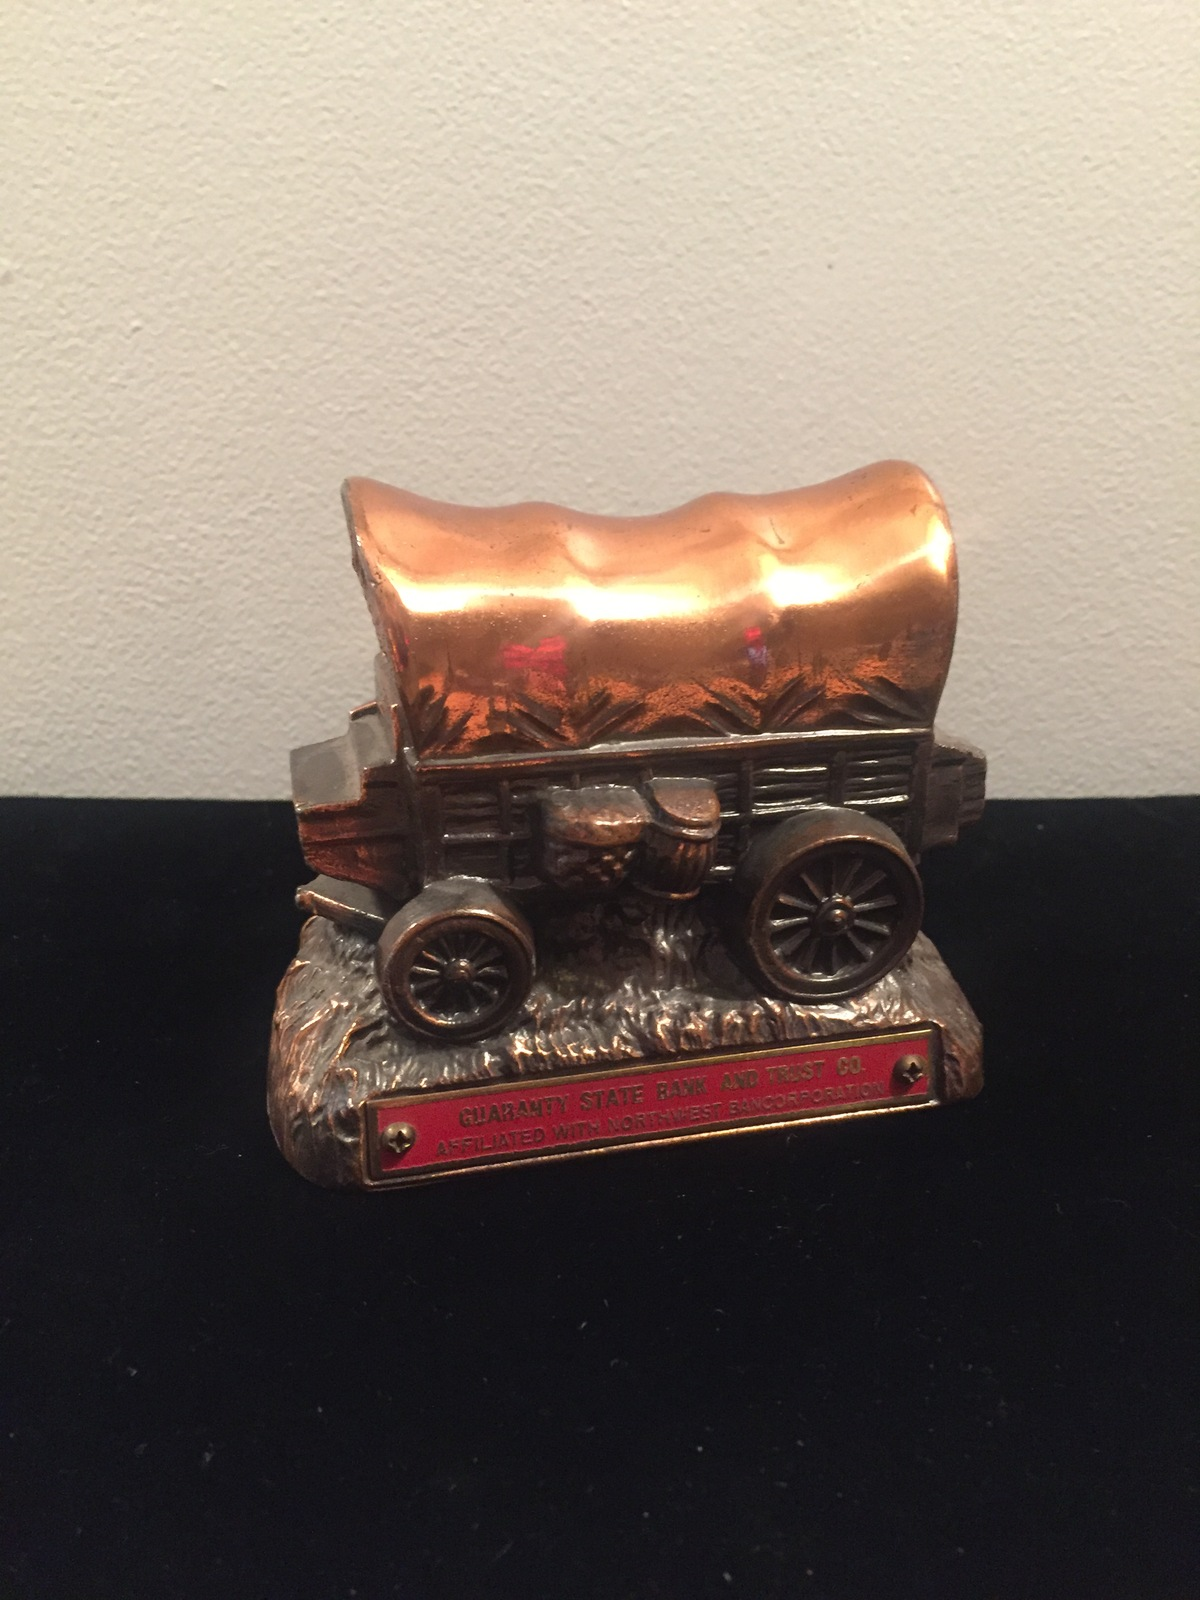 Vintage 50s Banthrico Cast Iron Stagecoach Bank, Guaranty State Bank